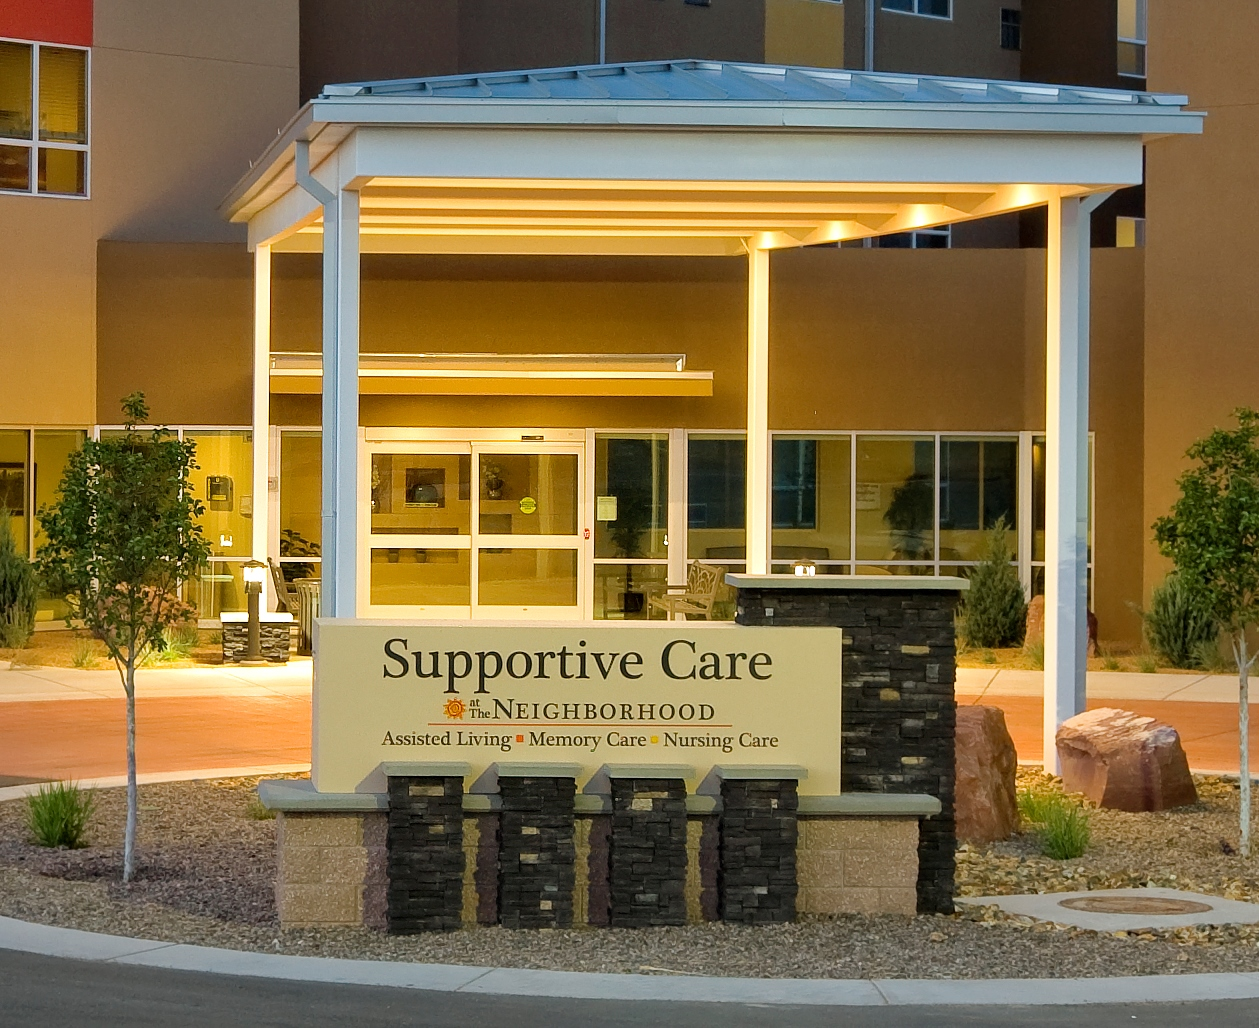 Supportive Care Sign at Entrance